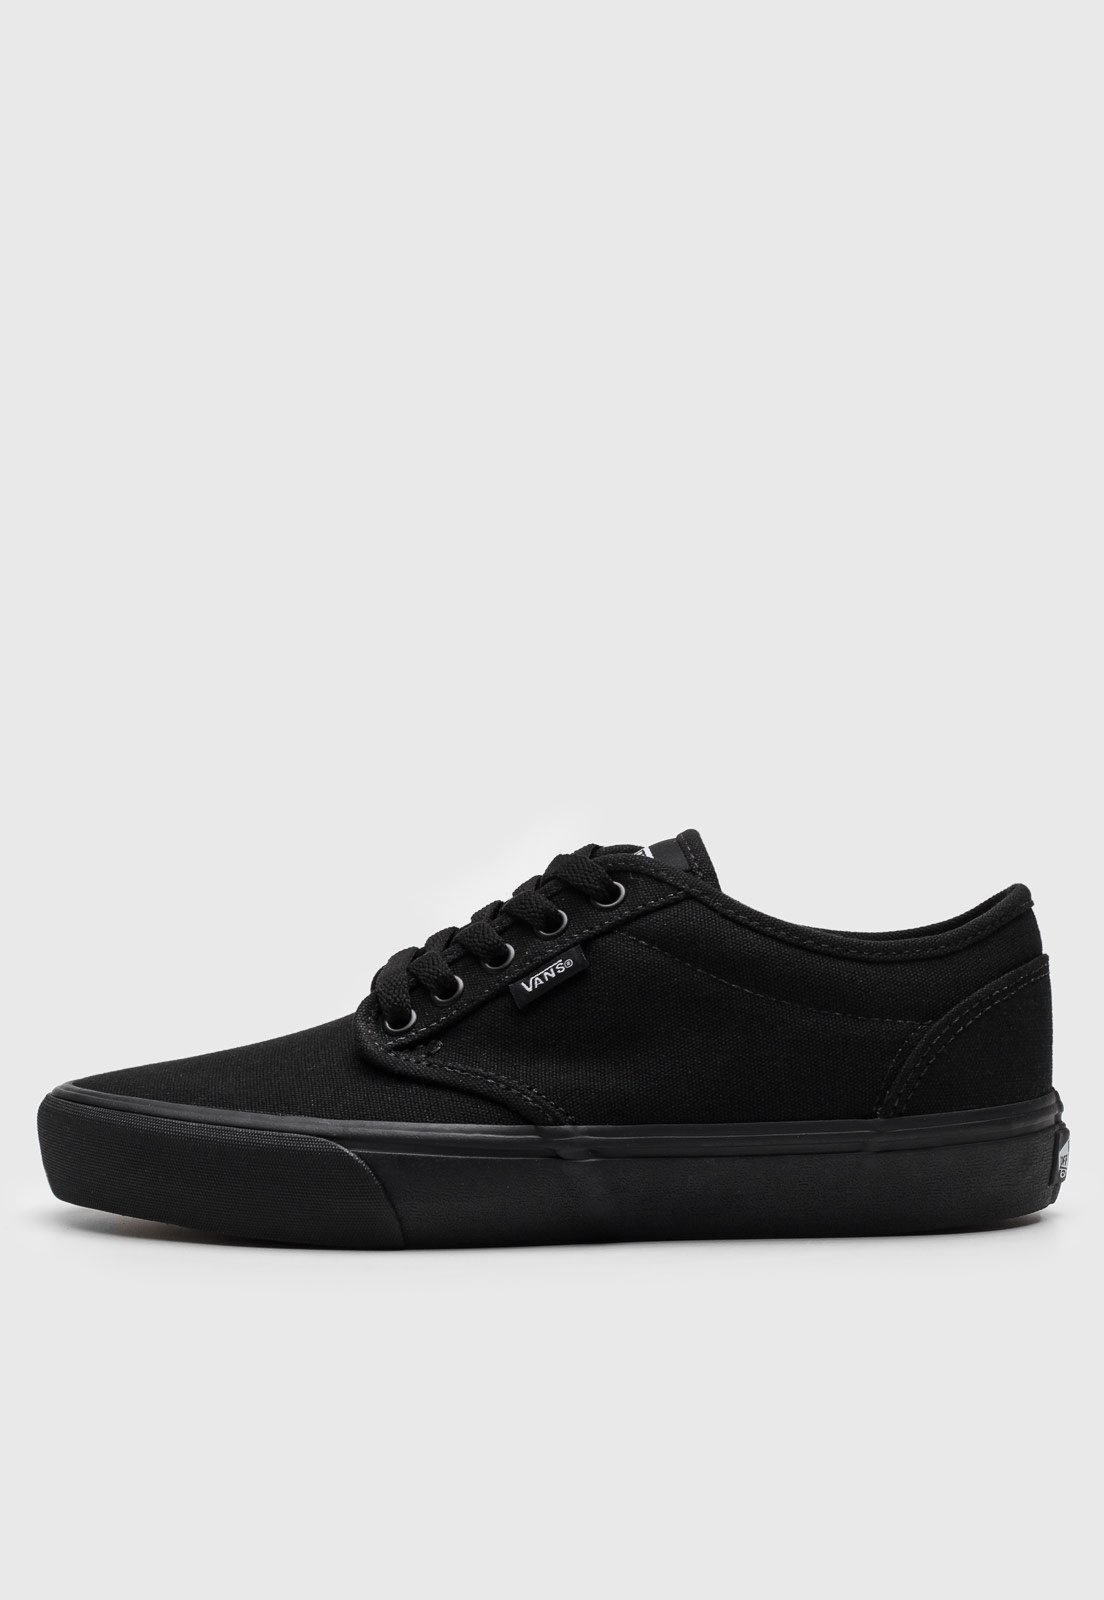 c17aaabe1ab Tênis Vans Atwood Preto - Compre Agora